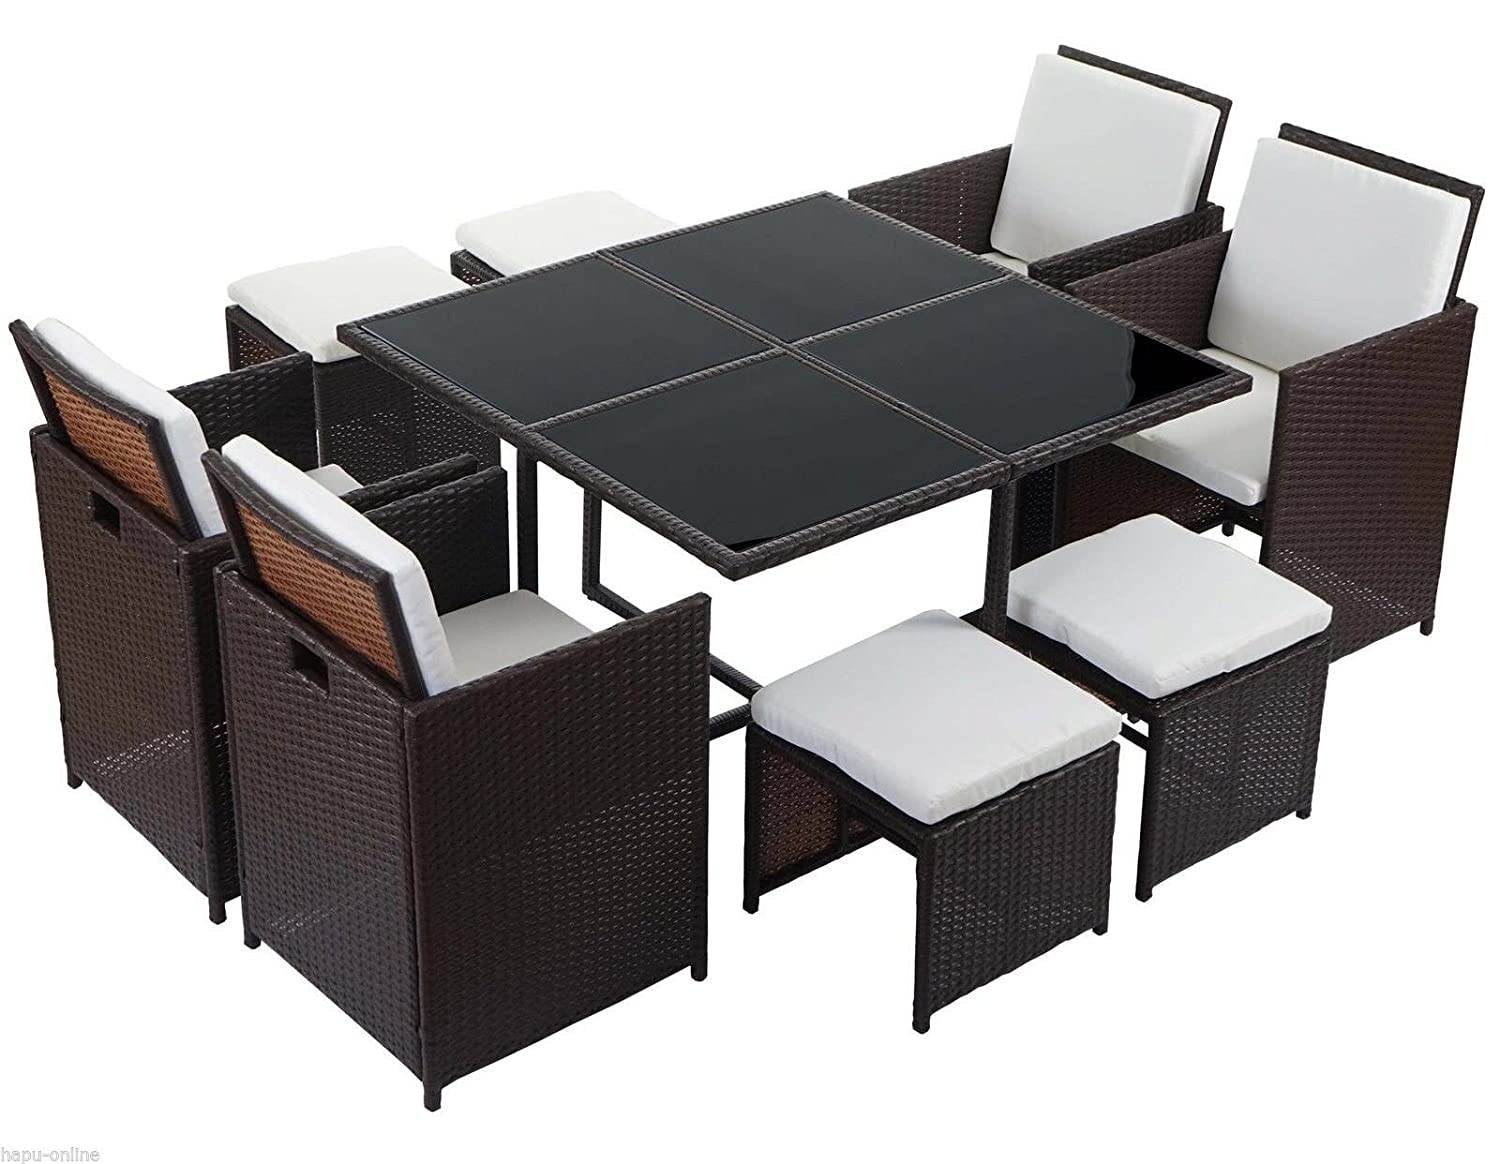 ssitg poly rattan garten garnitur set lounge sitzgruppe gartenm bel schwarz braun bestellen. Black Bedroom Furniture Sets. Home Design Ideas